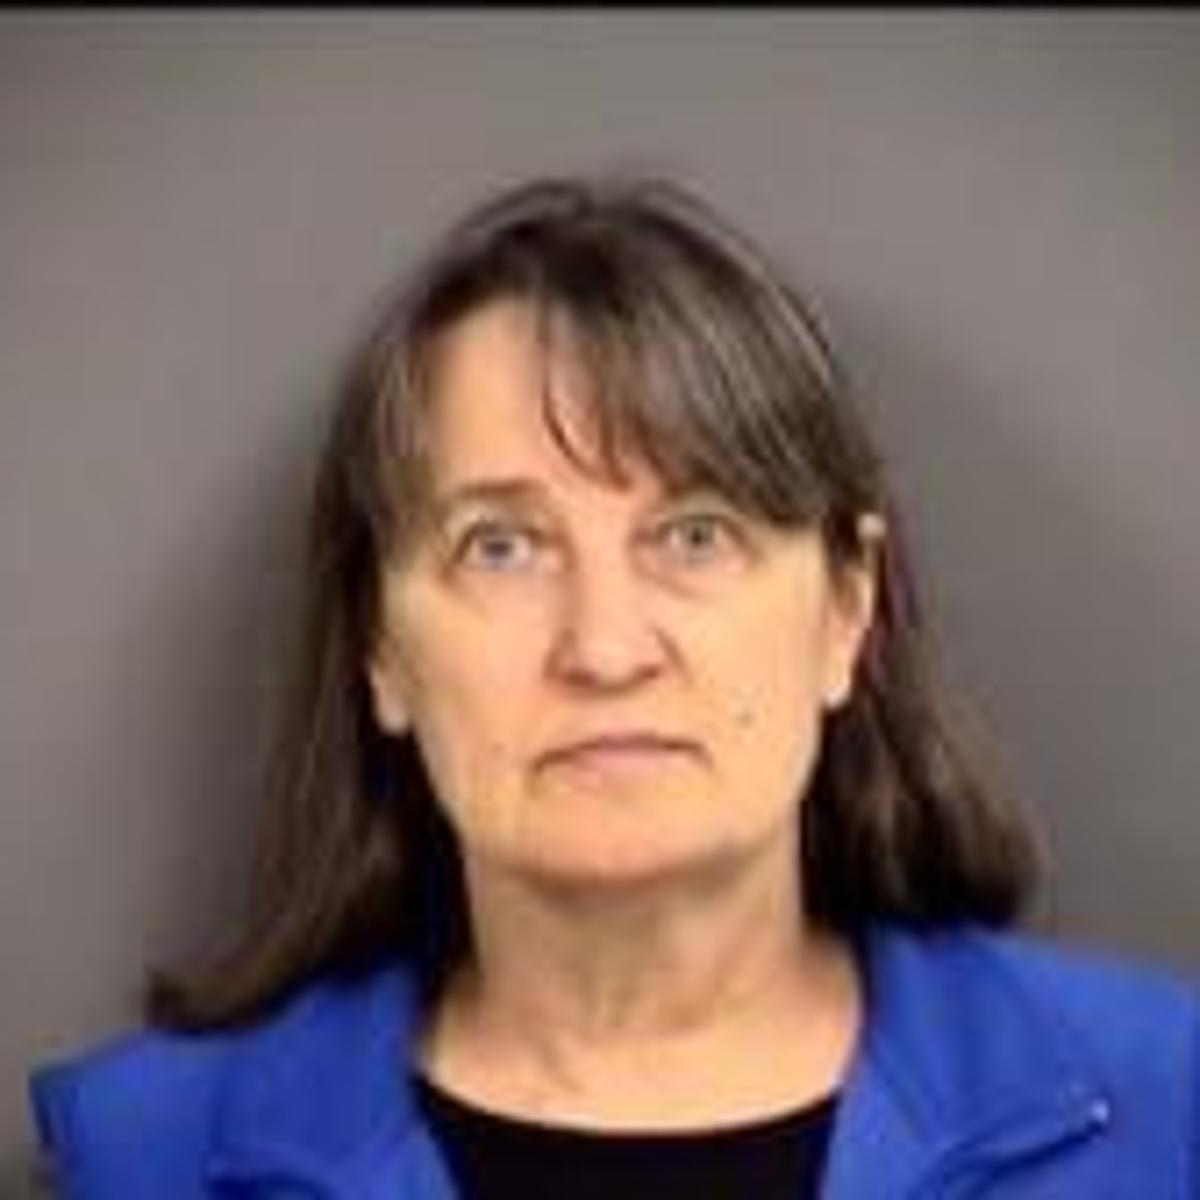 Ex-bookkeeper sentenced to probation on grand larceny charge